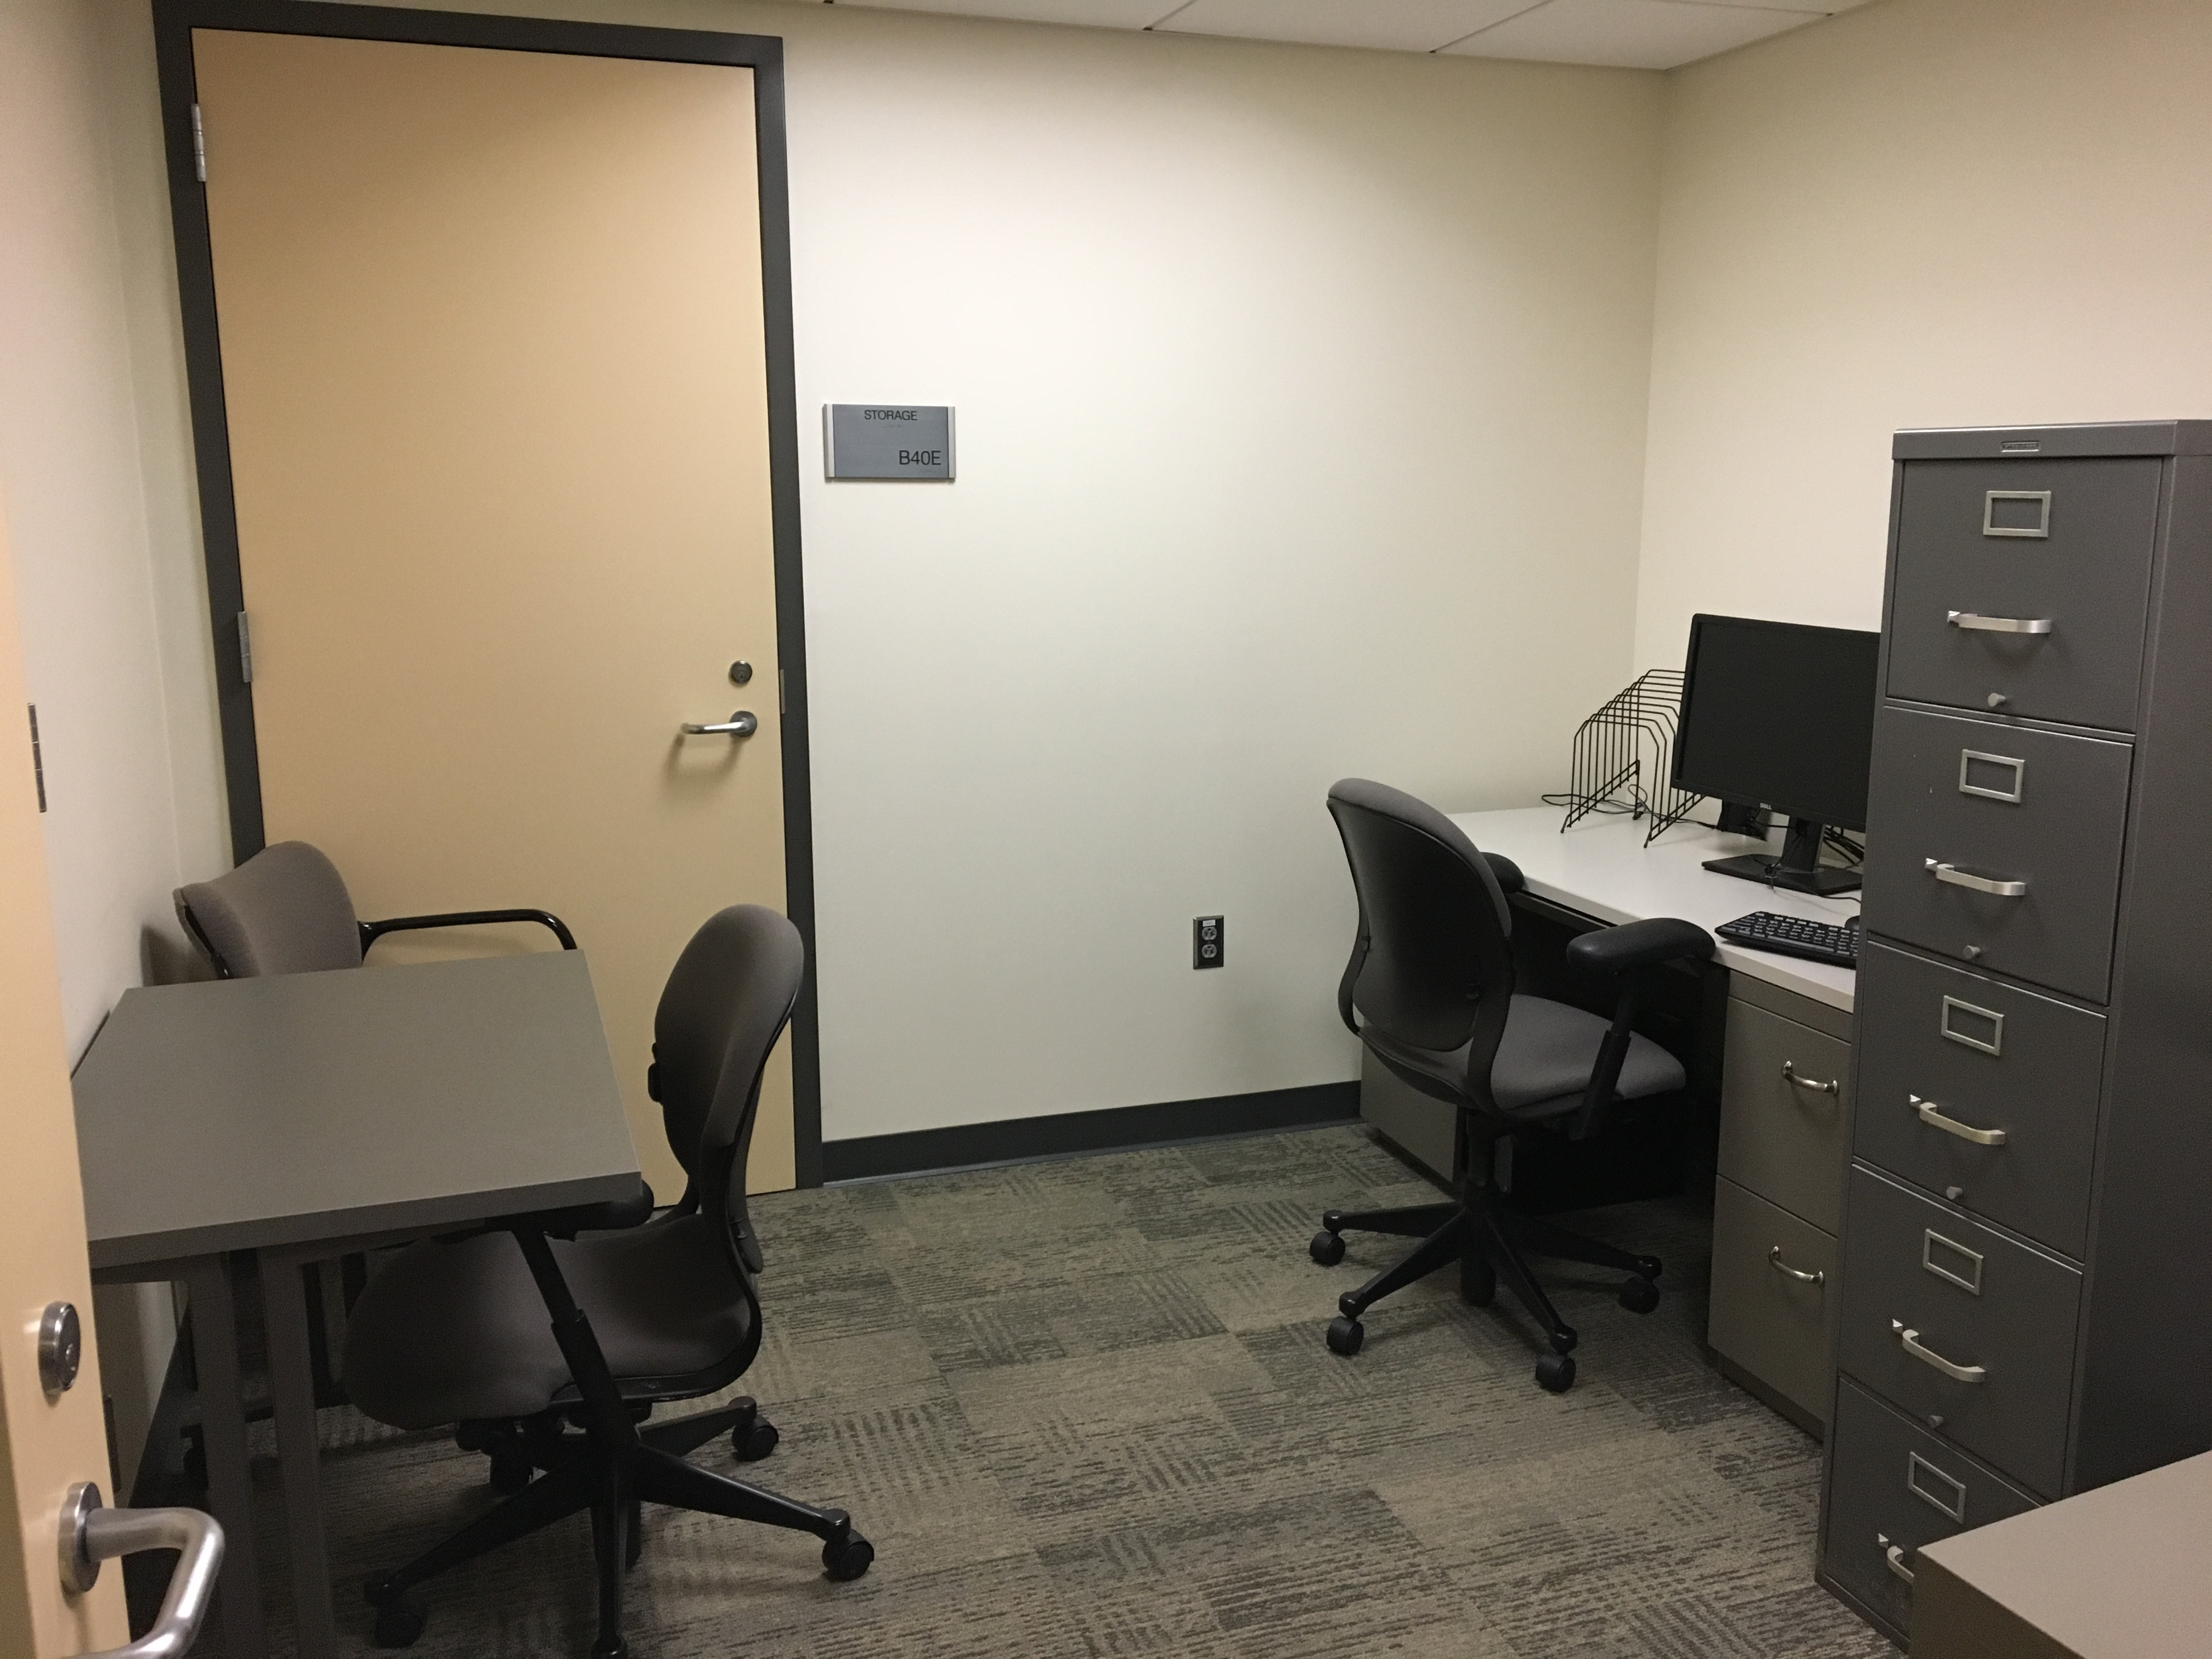 Room with two desks against opposite walls